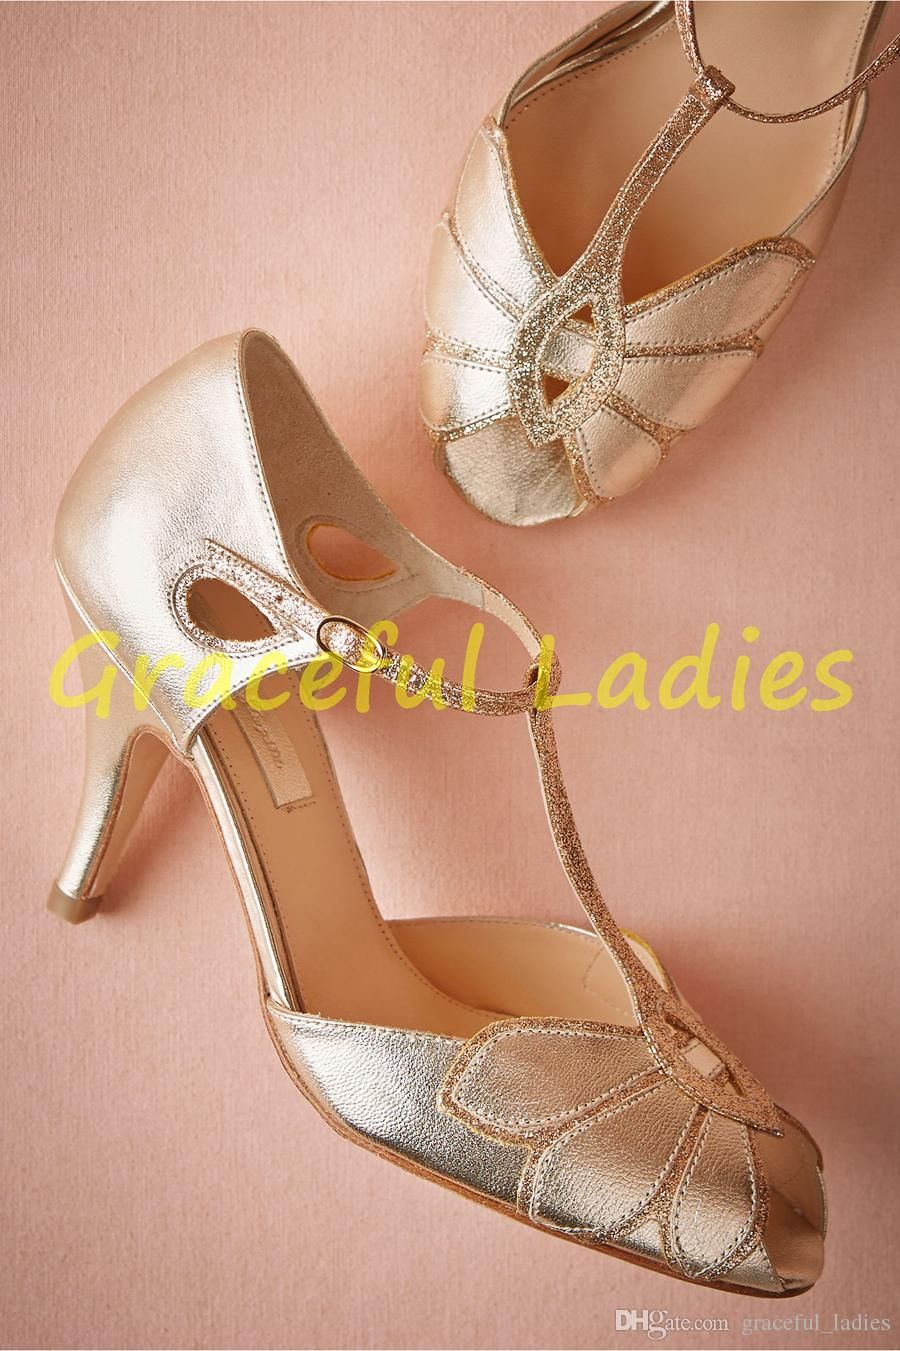 Vintage Gold Wedding Shoes Women Pumps Kitten Heel T Straps Buckle Closure Leather Party Dance